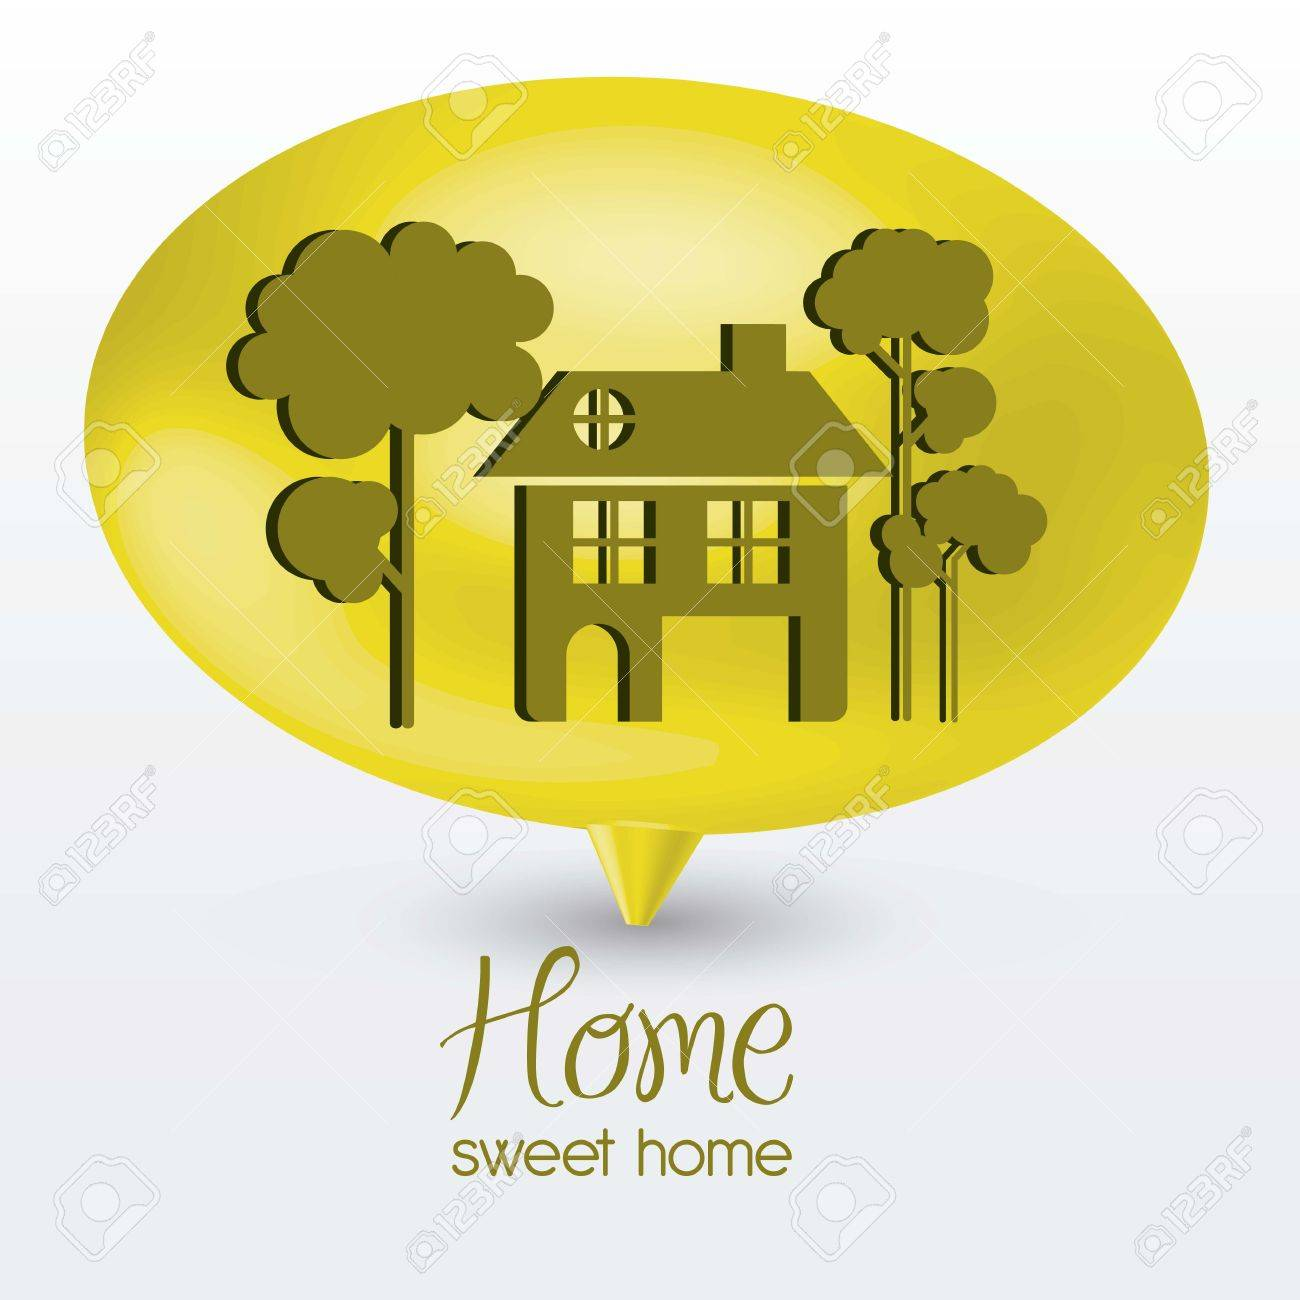 Illustration of home icon on text balloons, house silhouettes on white background, vector illustration Stock Vector - 15794492